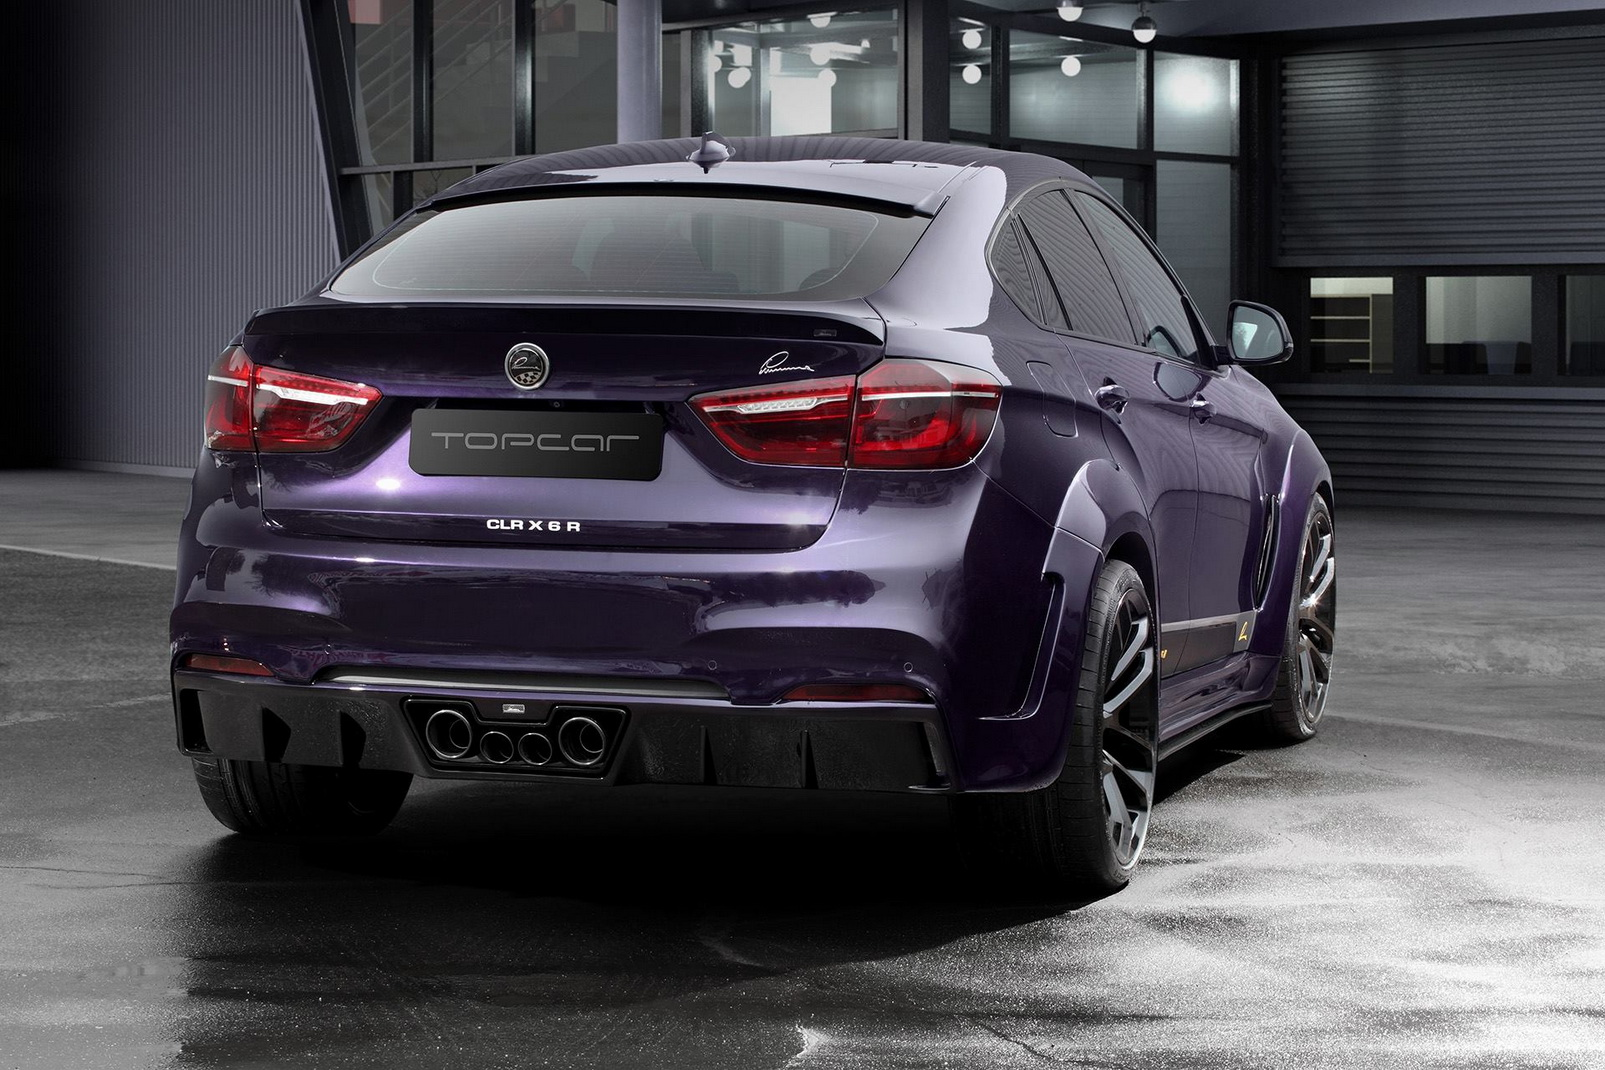 BMW M4 Coupe >> Plum Purple Lumma Design BMW CLR X 6 R